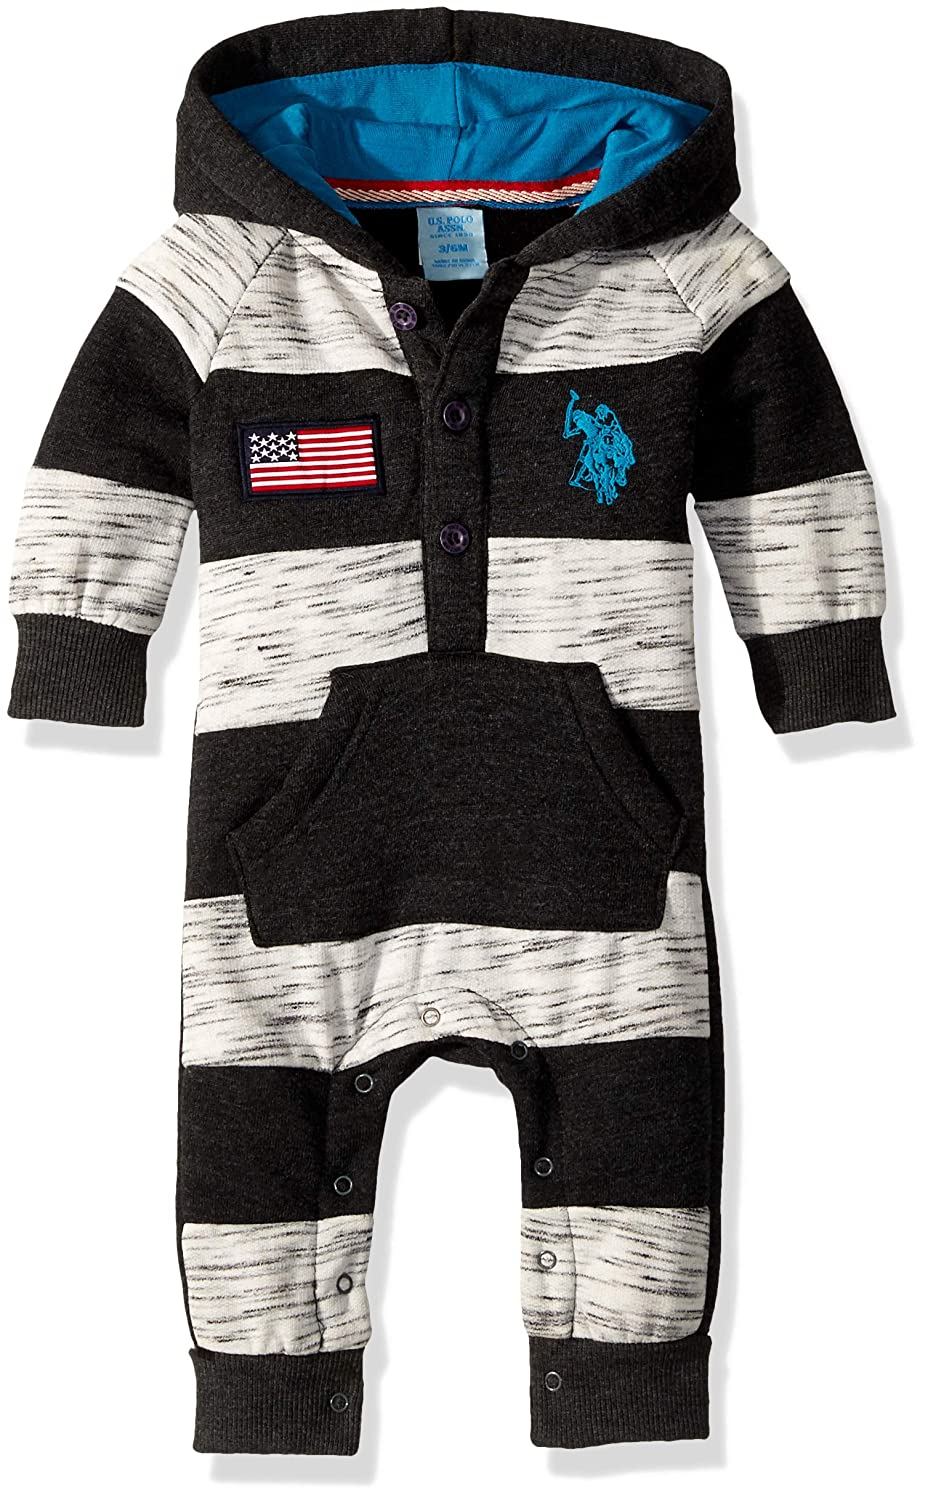 U.S. Polo Assn. PANTS ベビーボーイズ 6 - 9 Months Thicket Striped Dark Heather Gray B0799DQNMK